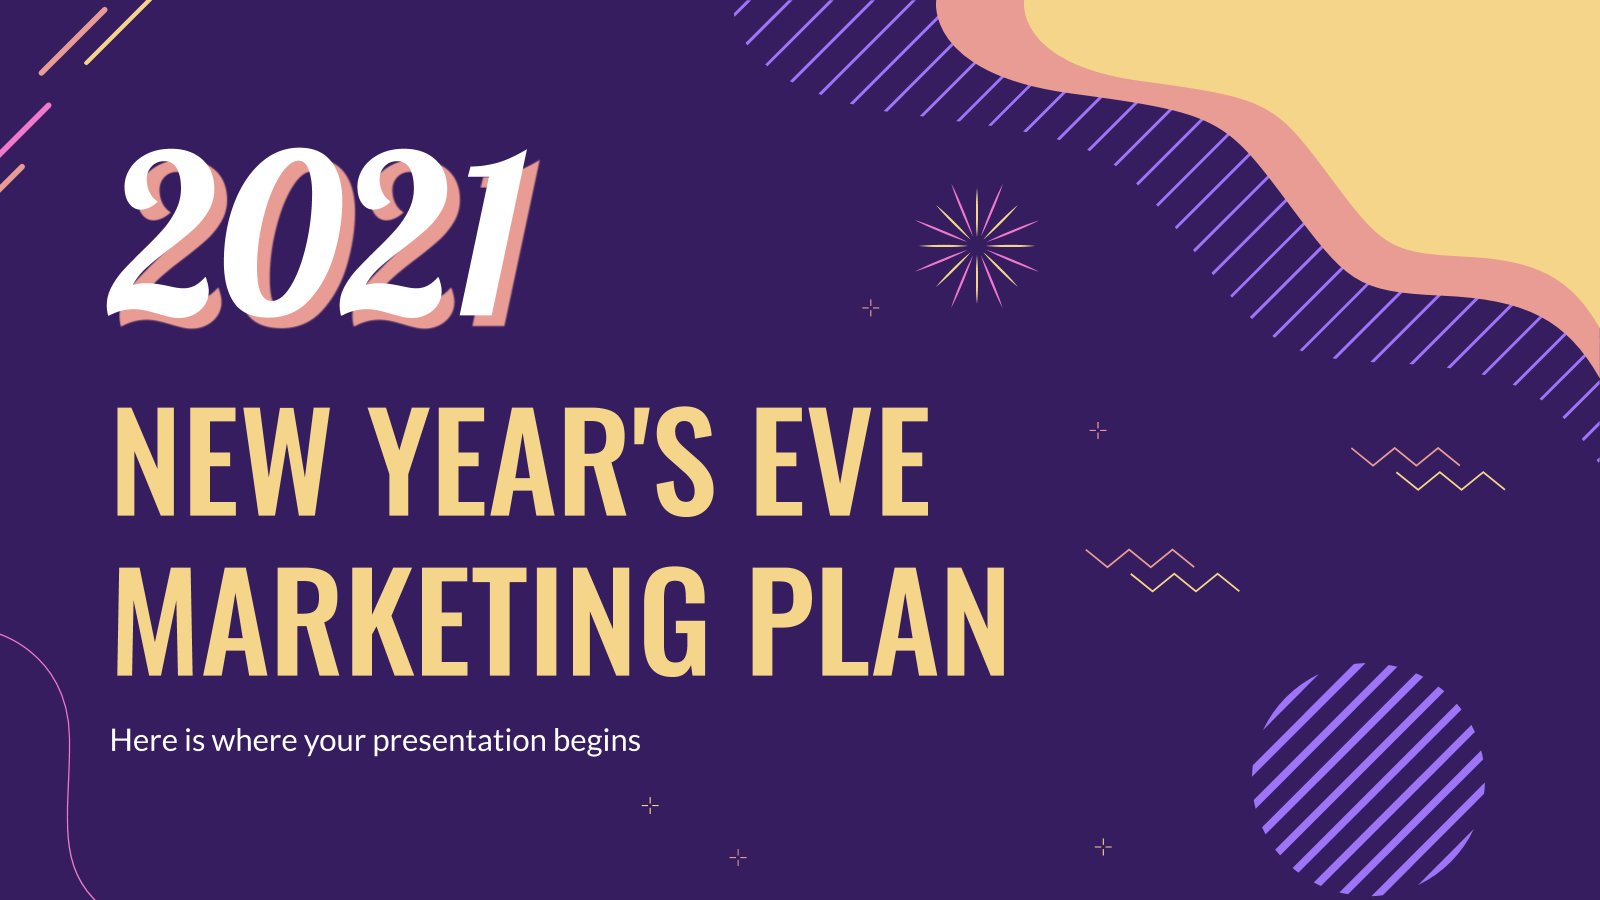 New Year's Eve Marketing Plan presentation template